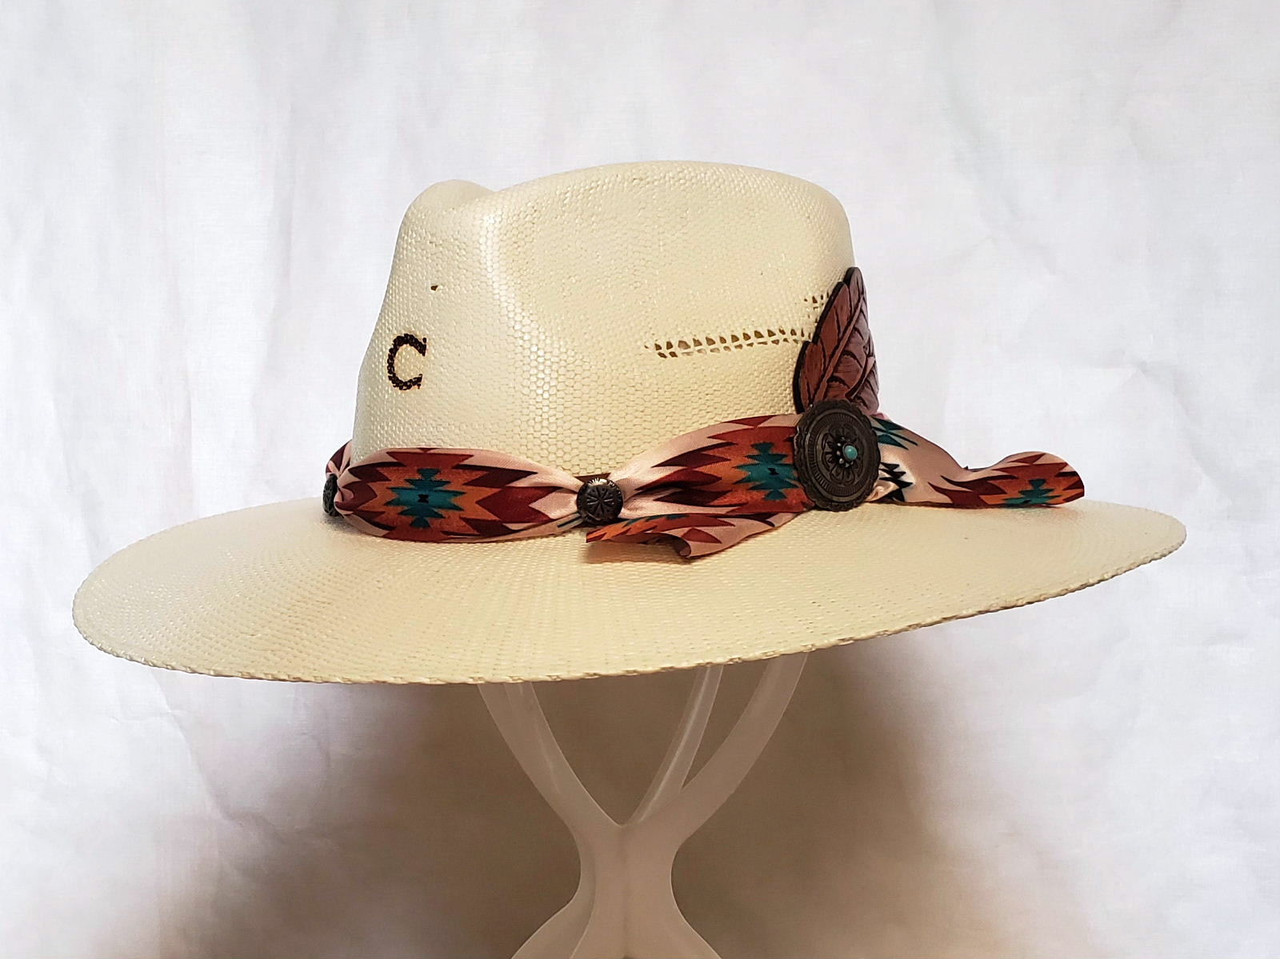 91826a6c3 Charlie 1 Horse Navajo Straw Western Hat - One 2 mini Ranch